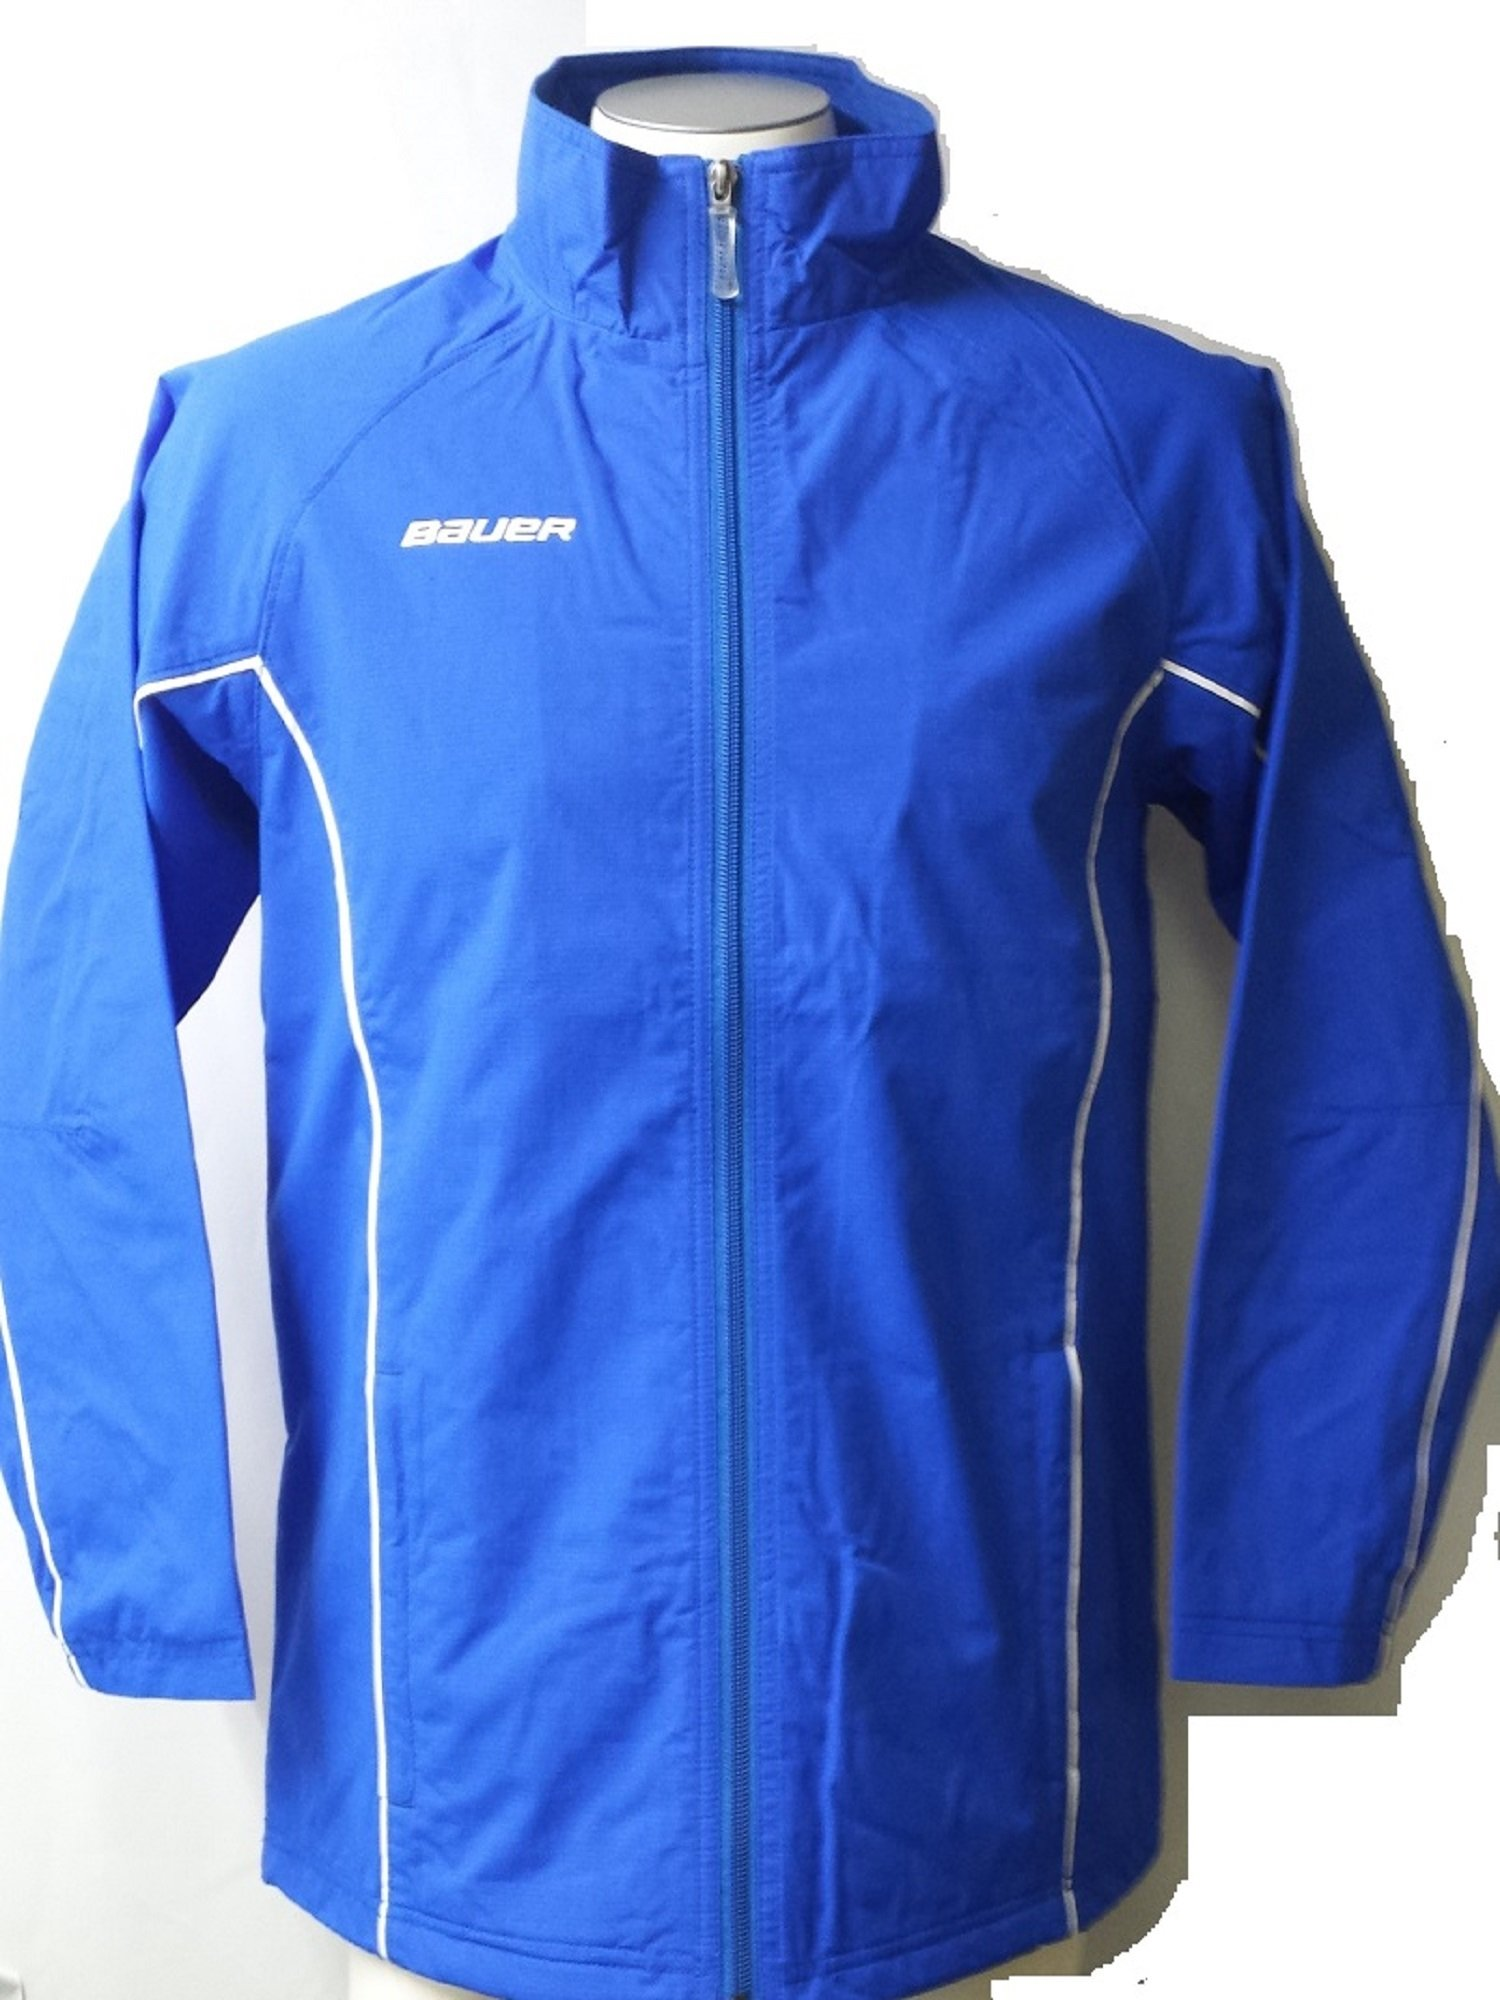 Bauer Youth Warm Up Jacket, Royal Small